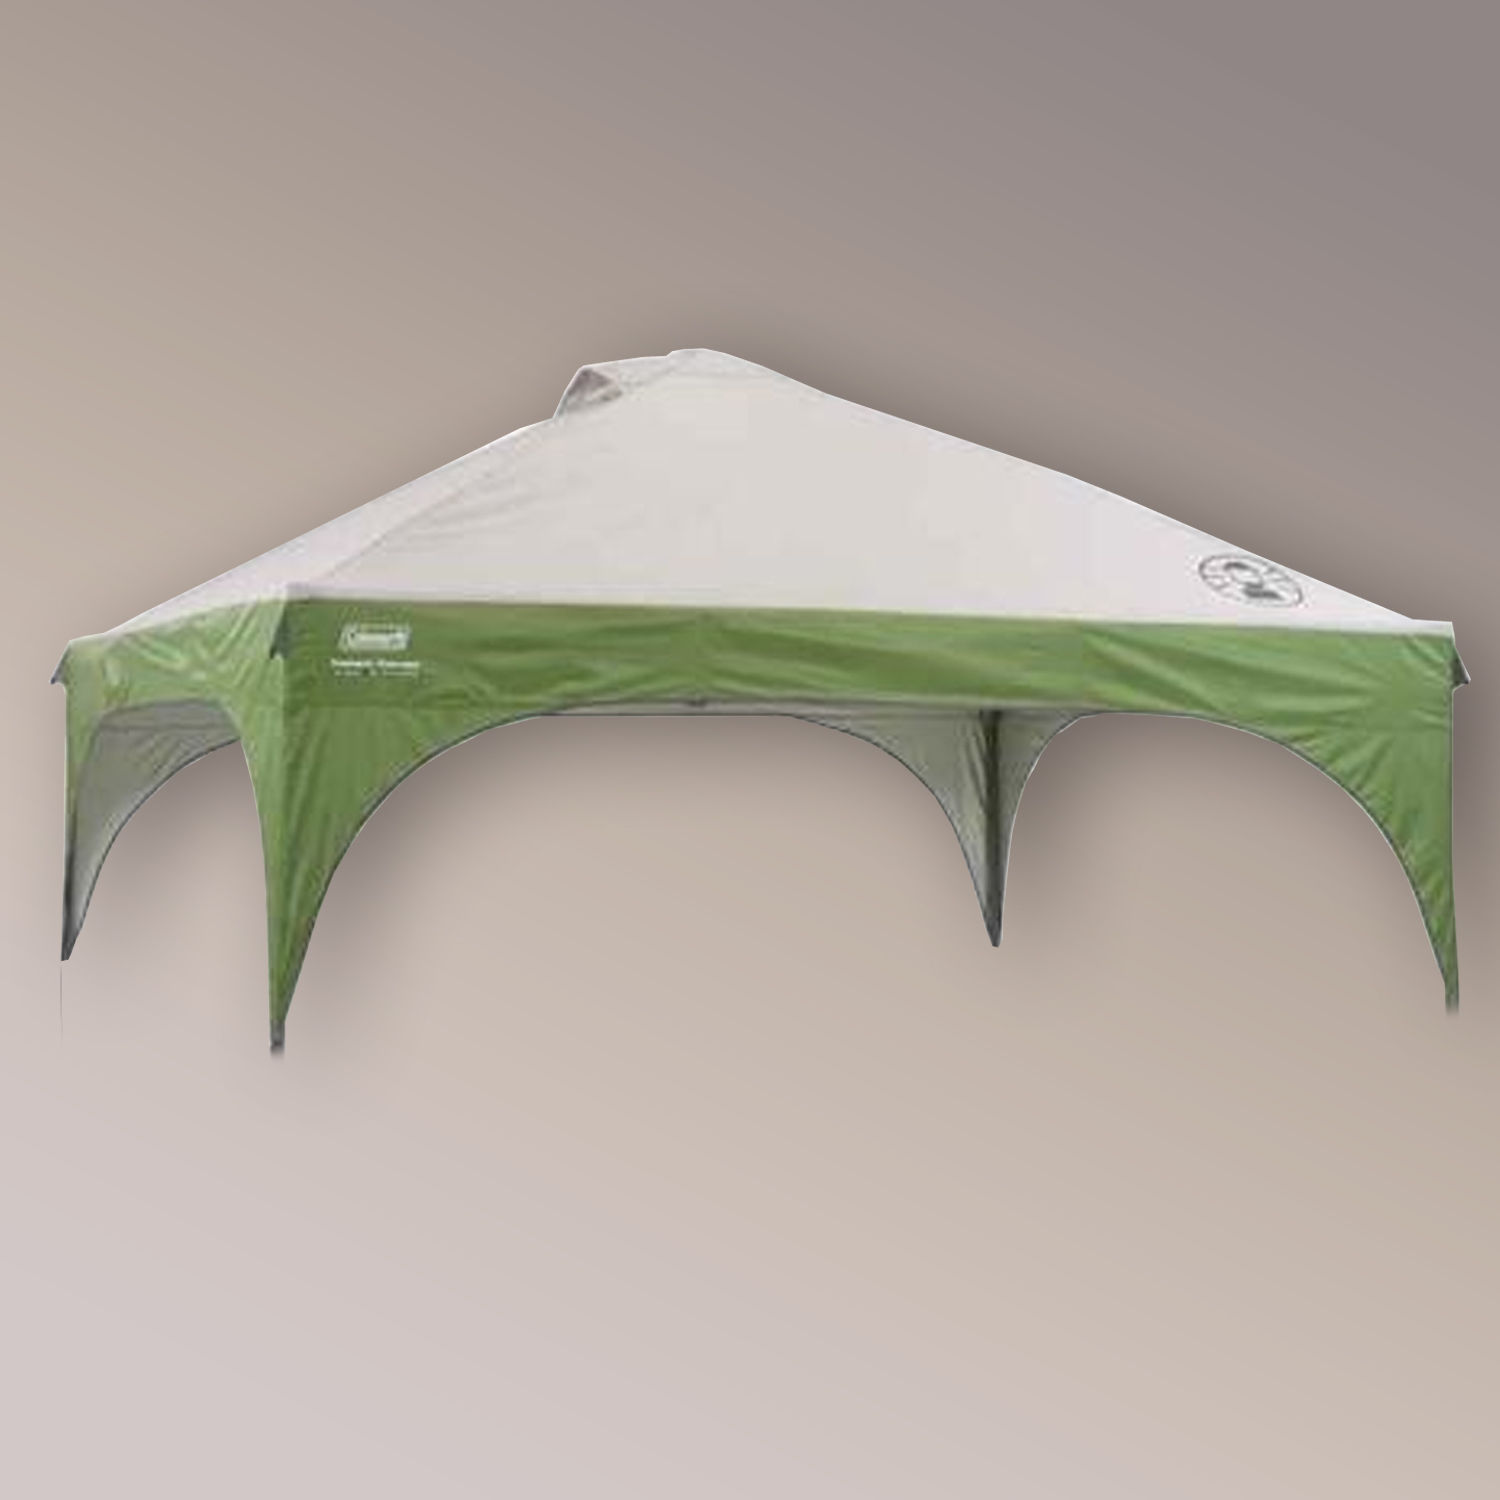 Canopy Top for Coleman 12u0027 x 12u0027 Instant Canopy Gazebo Tent Replacement Parts & Canopy Top for Coleman 12u0027 x 12u0027 Instant Canopy Gazebo Tent ...